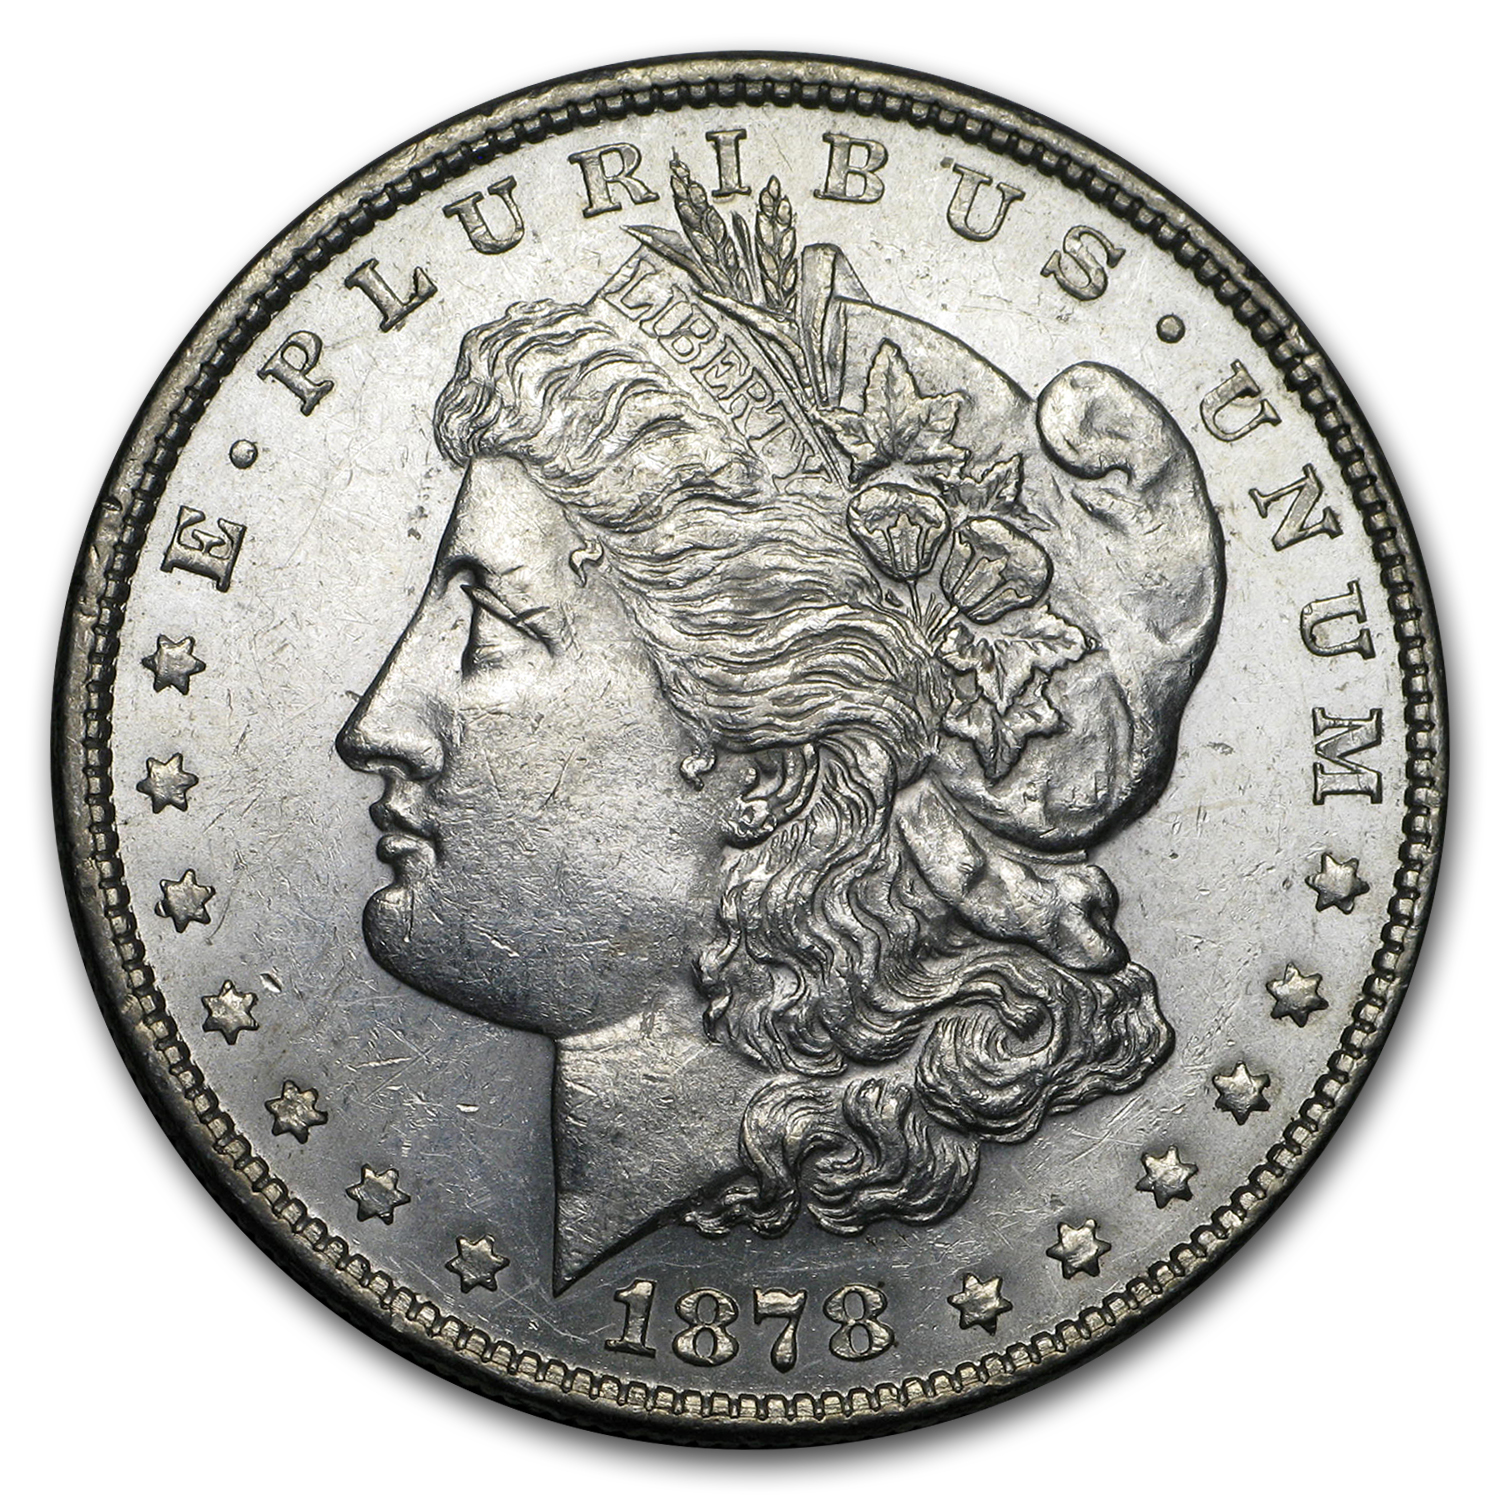 1878 Morgan Dollar 7 Tailfeathers Rev of 1878 AU-58